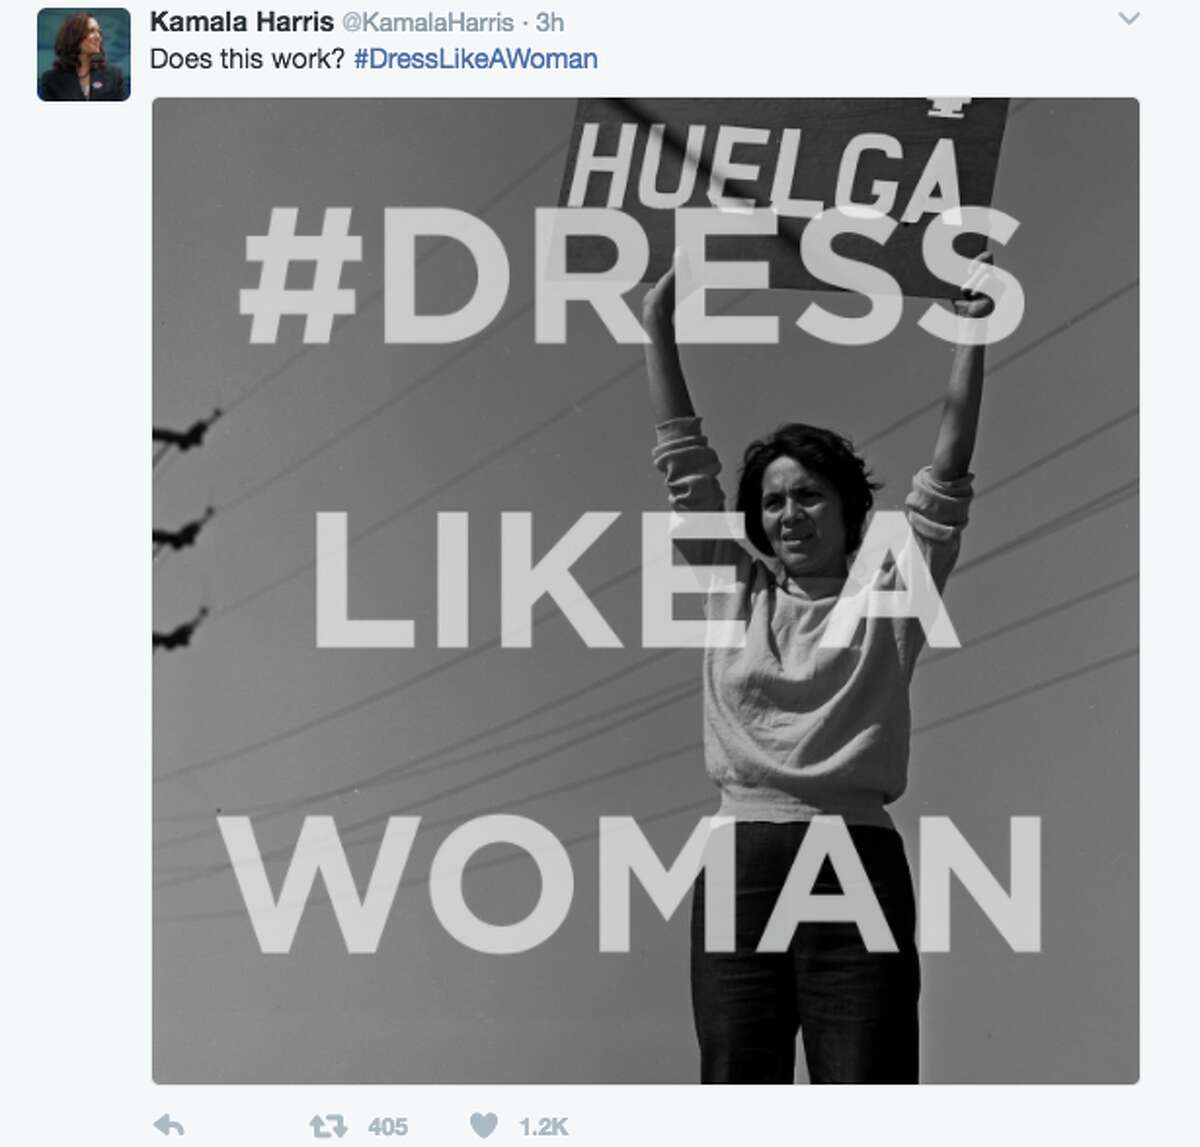 After news broke out that President Trump wanted his female staffers to 'dress like women,' many woman responded by tweeting photos of what real women dress like at work. The photos included women in hijabs, scrubs, hockey uniforms, spacesuits, and judge robes. Senator Kamala Harris got in on the action and tweeted several photos under the hashtag #dresslikeawoman. Here she tweeted an image of Dolores Huerta, co-founder and first vice president of the United Farm Workers.